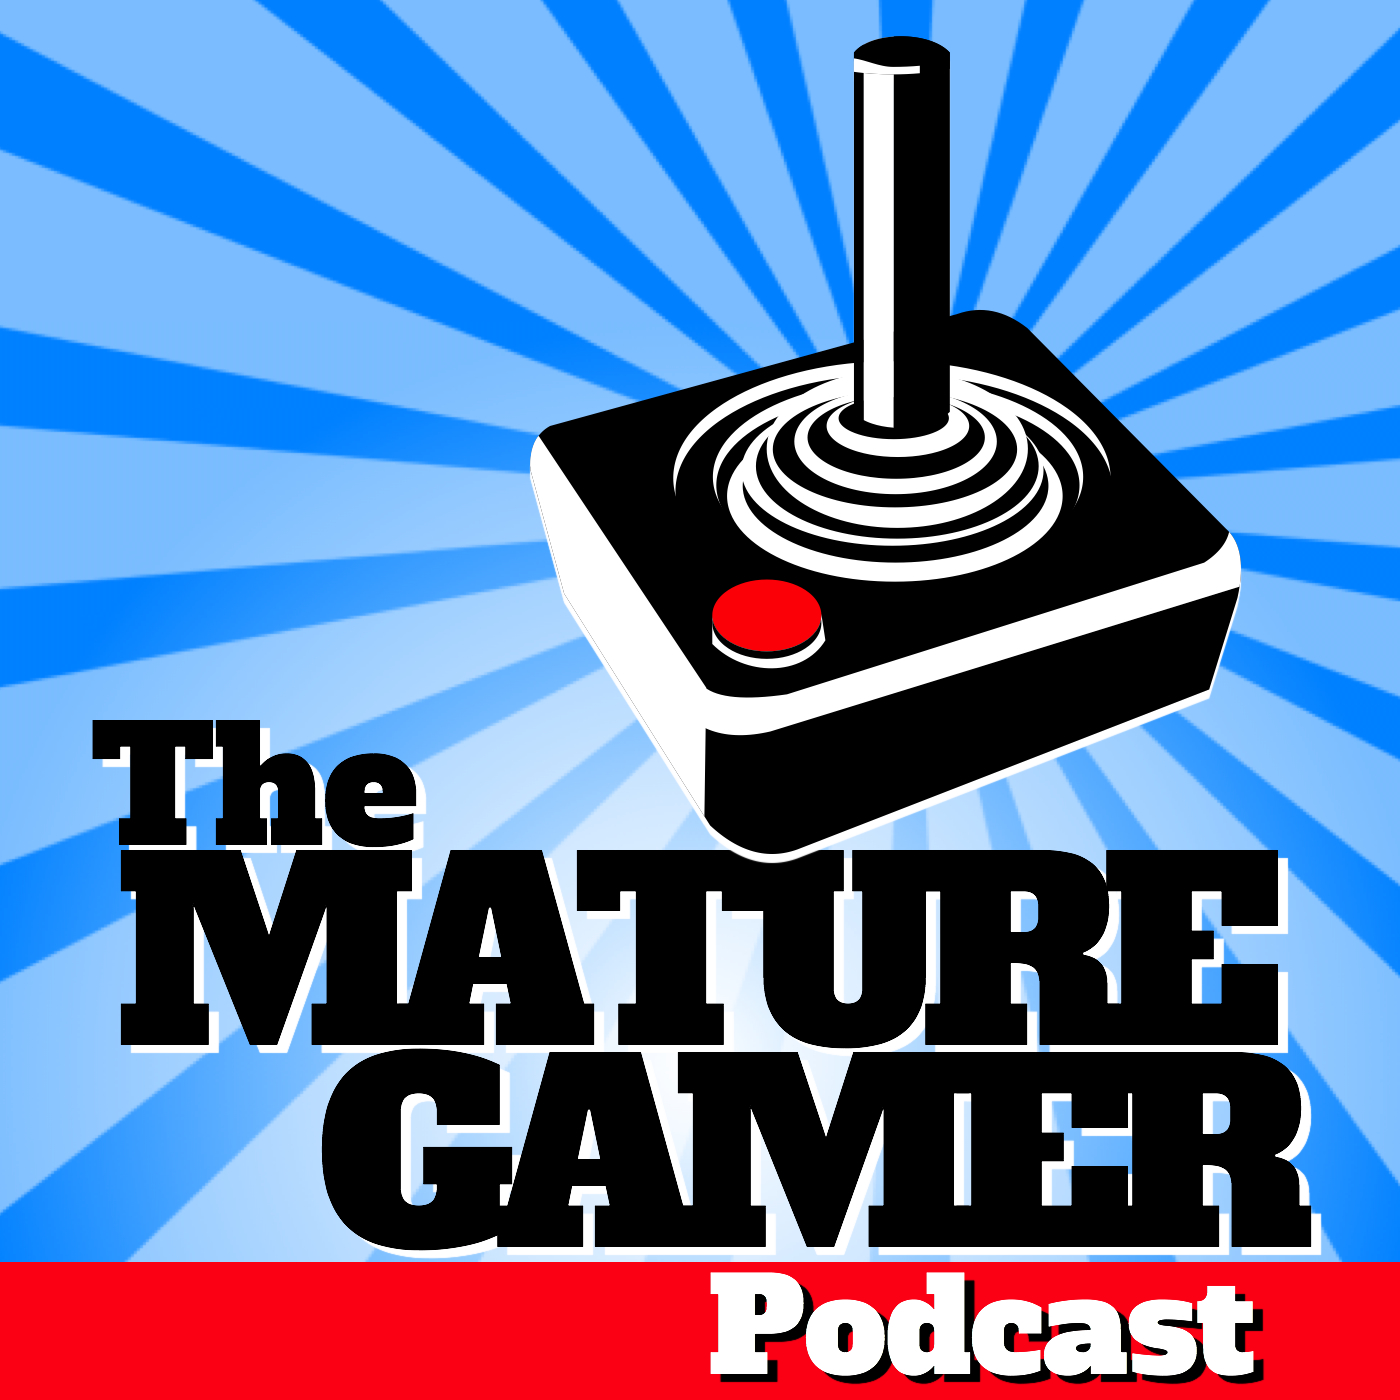 The Mature Gamer Podcast show image